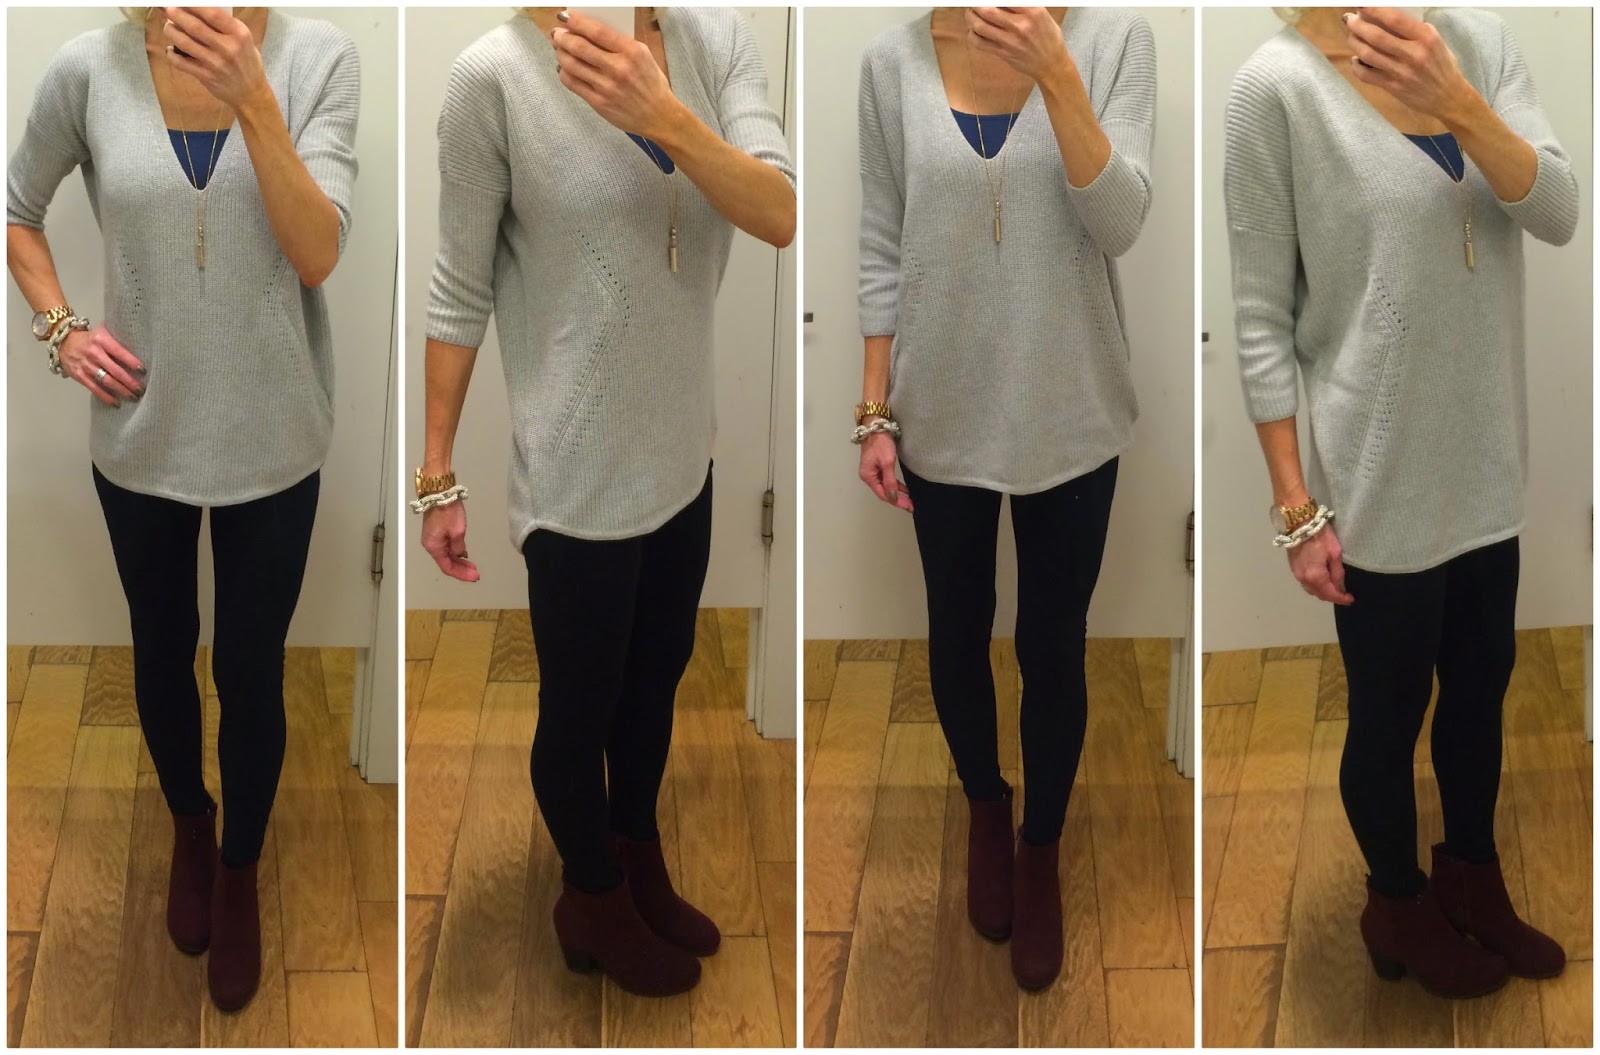 Express London Sweater review, fit notes, outfit idea